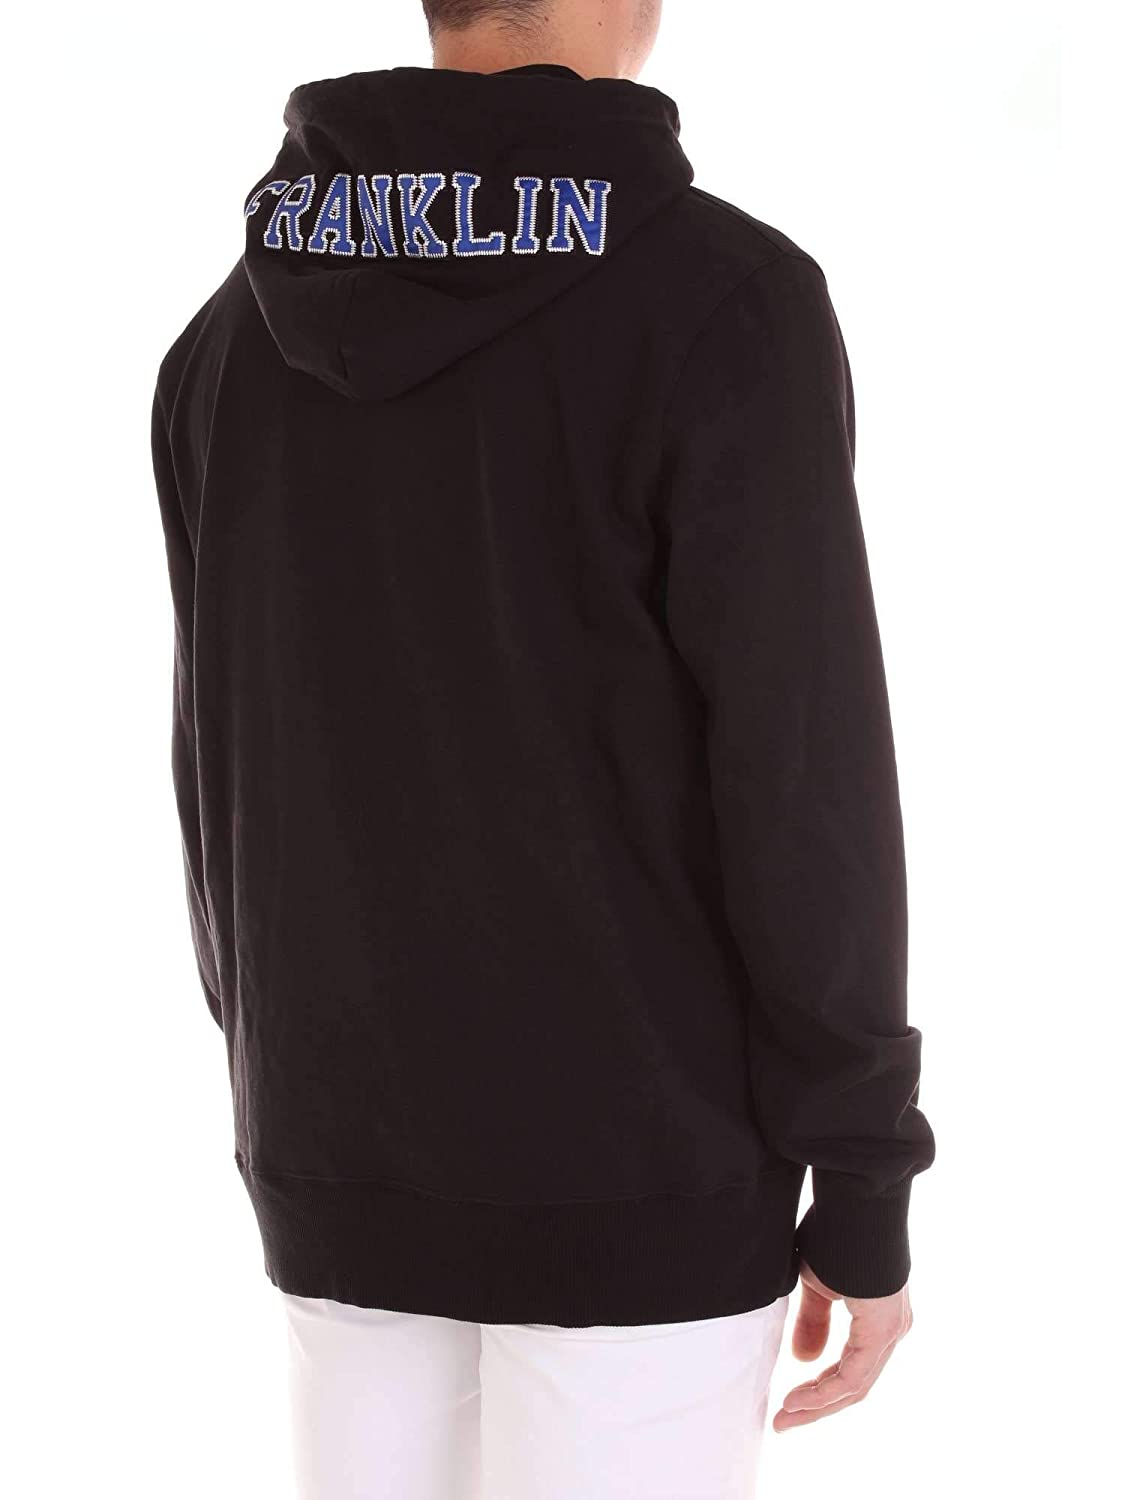 Franklin Marshall and Marshall Franklin FLMF167ANS19 Sweatshirt Harren 237b30